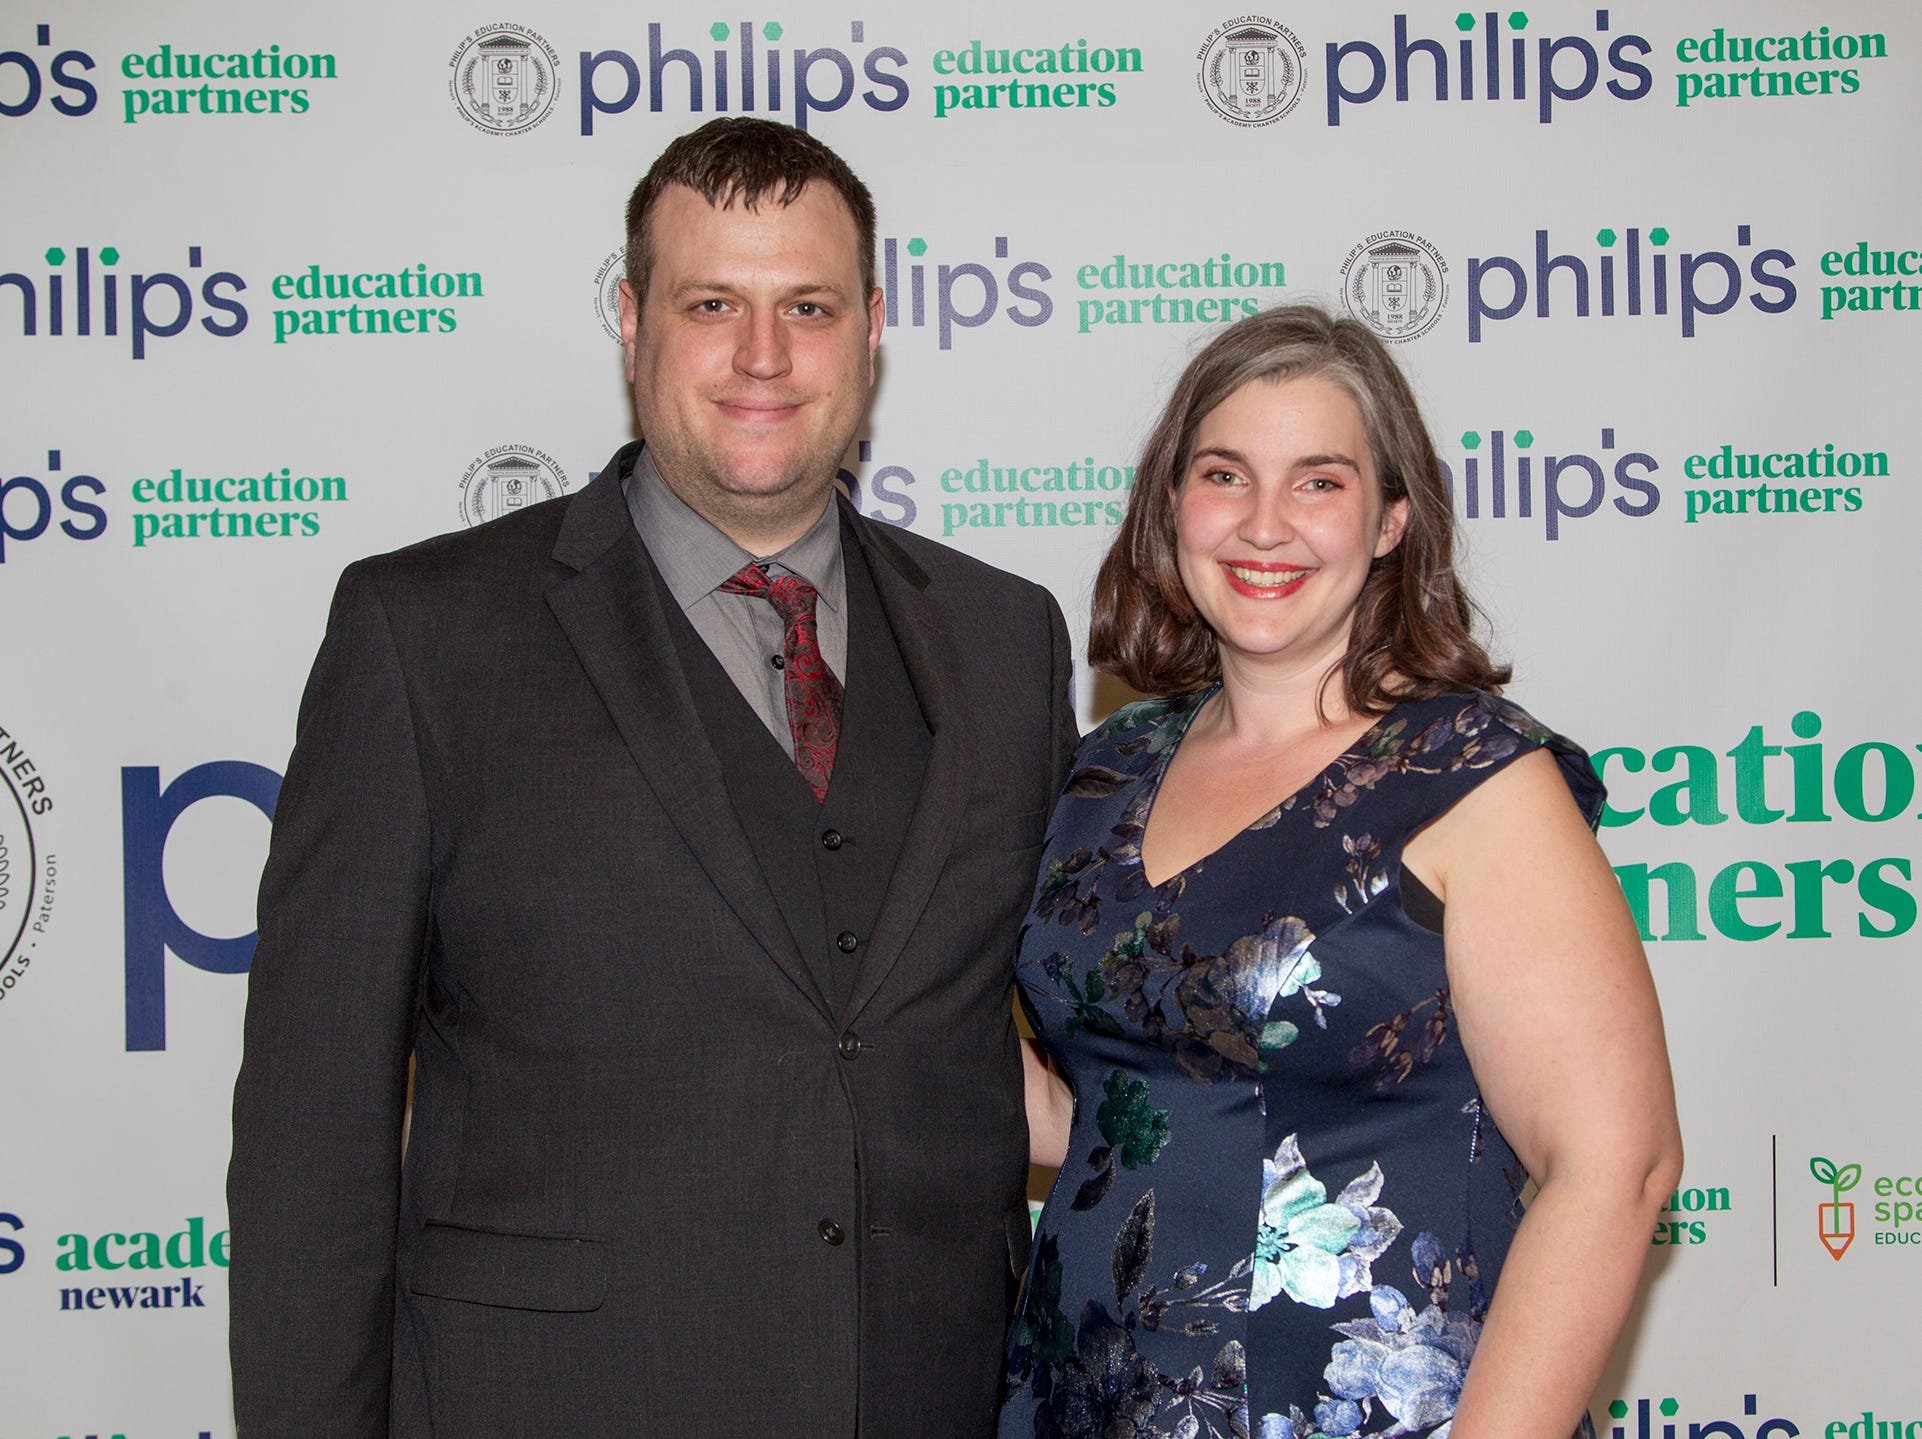 Brian Chambers and Thea Heninger-Lowell. Philip's Education Partners host The Dream Maker 30th anniversary gala at The Mezzanine in Newark 3/29/2019.